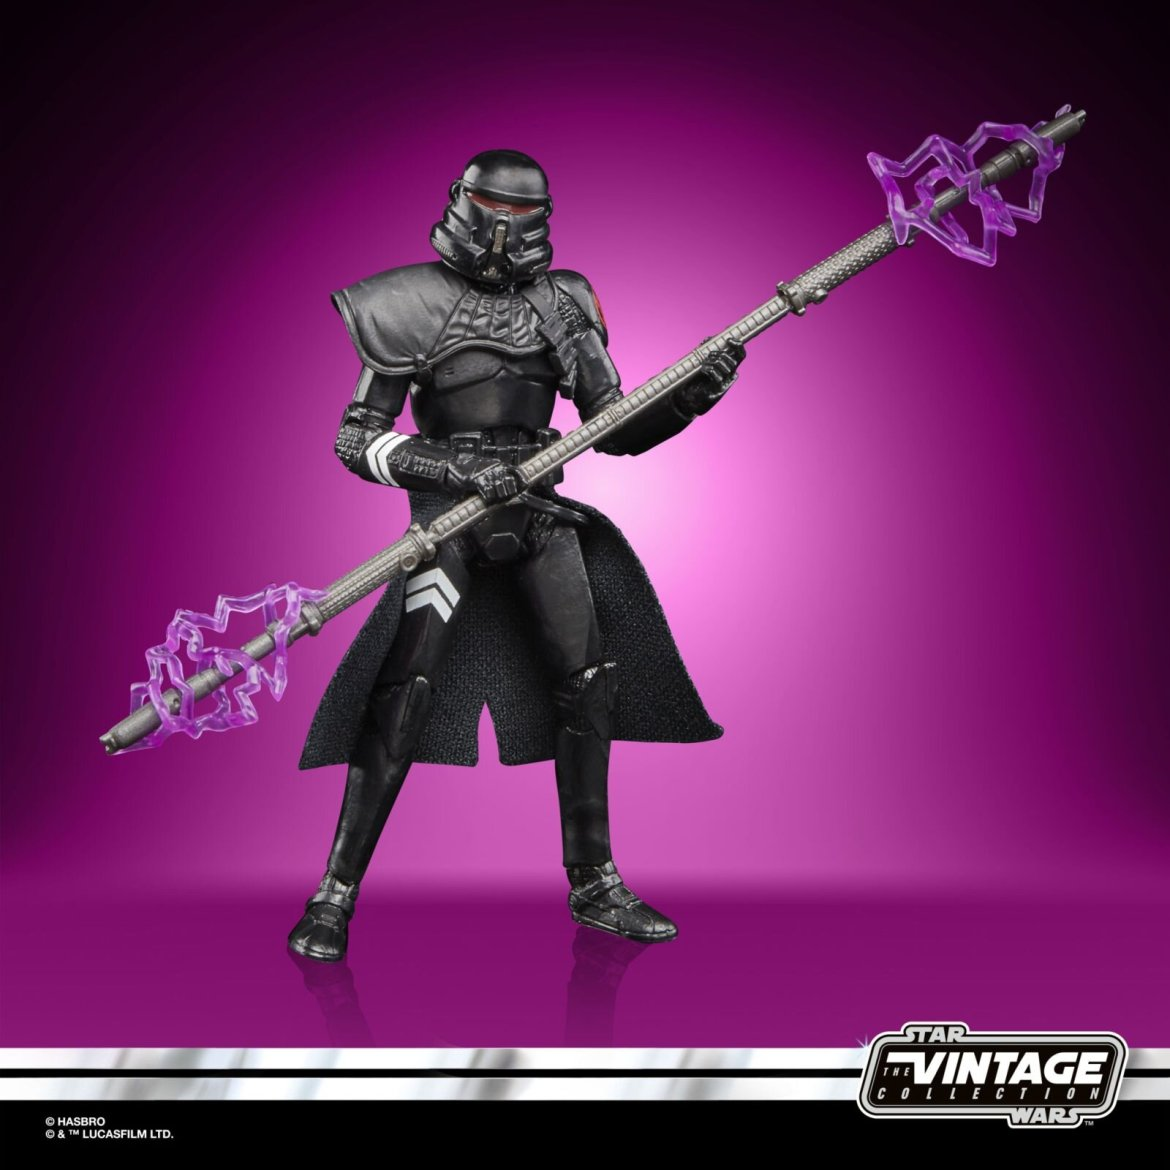 STAR WARS THE VINTAGE COLLECTION GAMING GREATS 3.75-INCH PURGE STORMTOOPER Figure (3).jpg